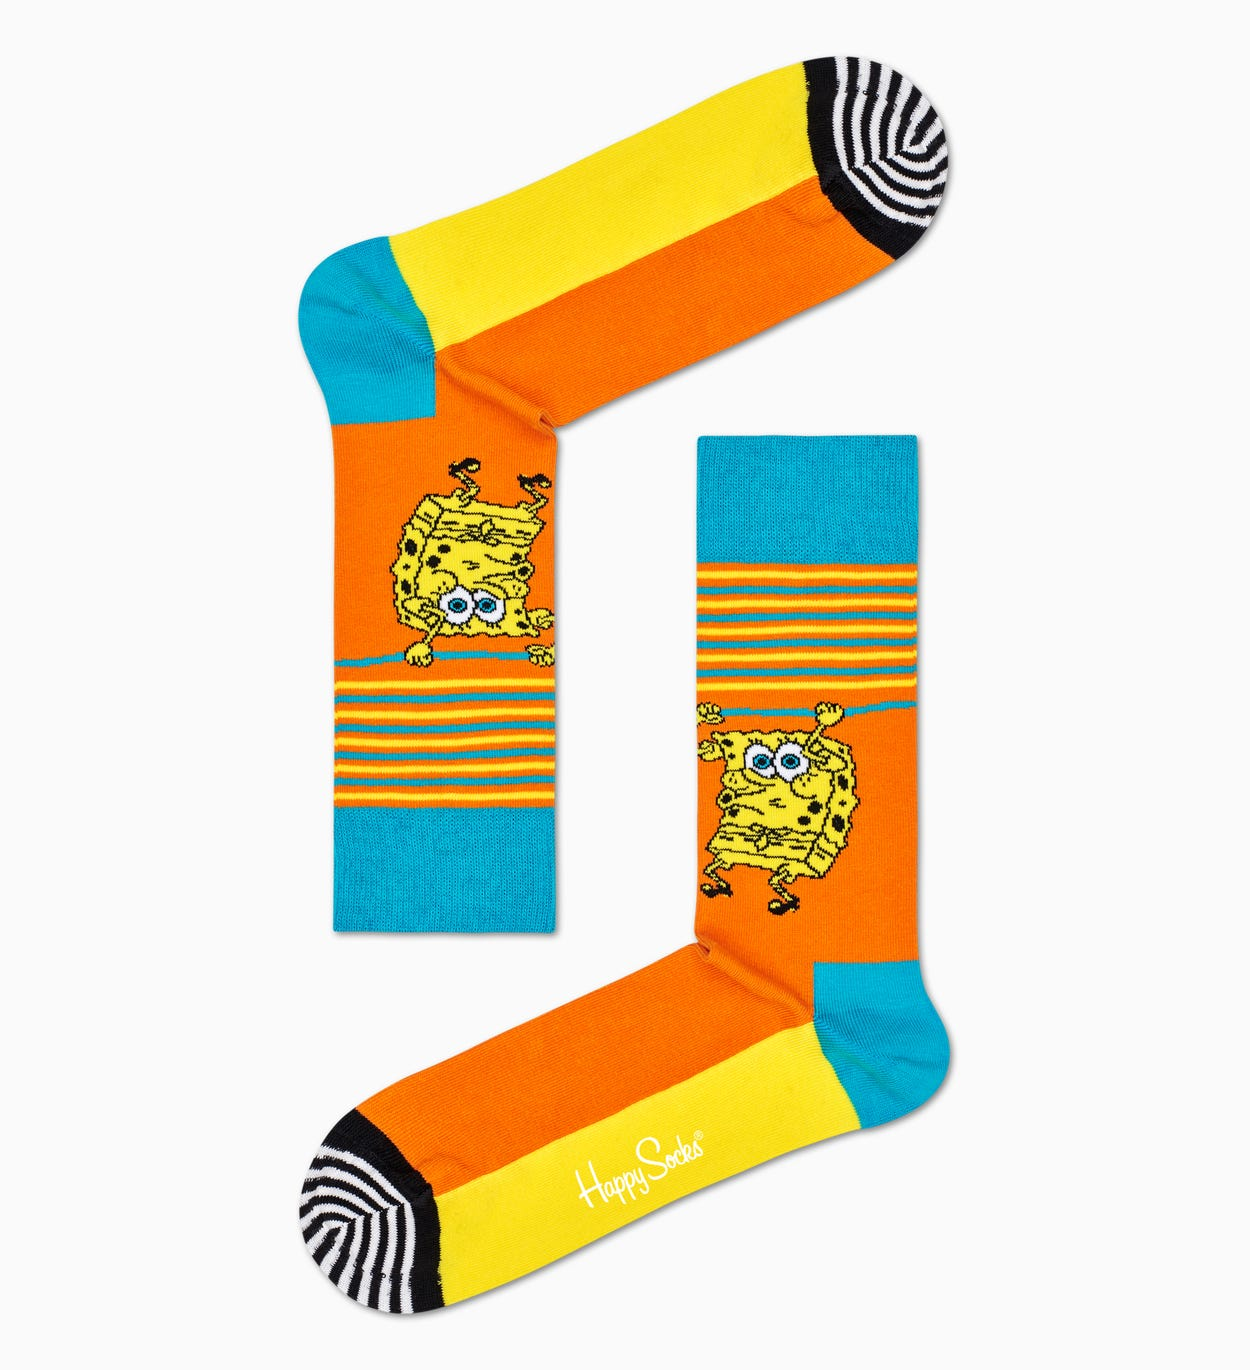 Happy Socks x Sponge Bob: Let's Work It Out Socks